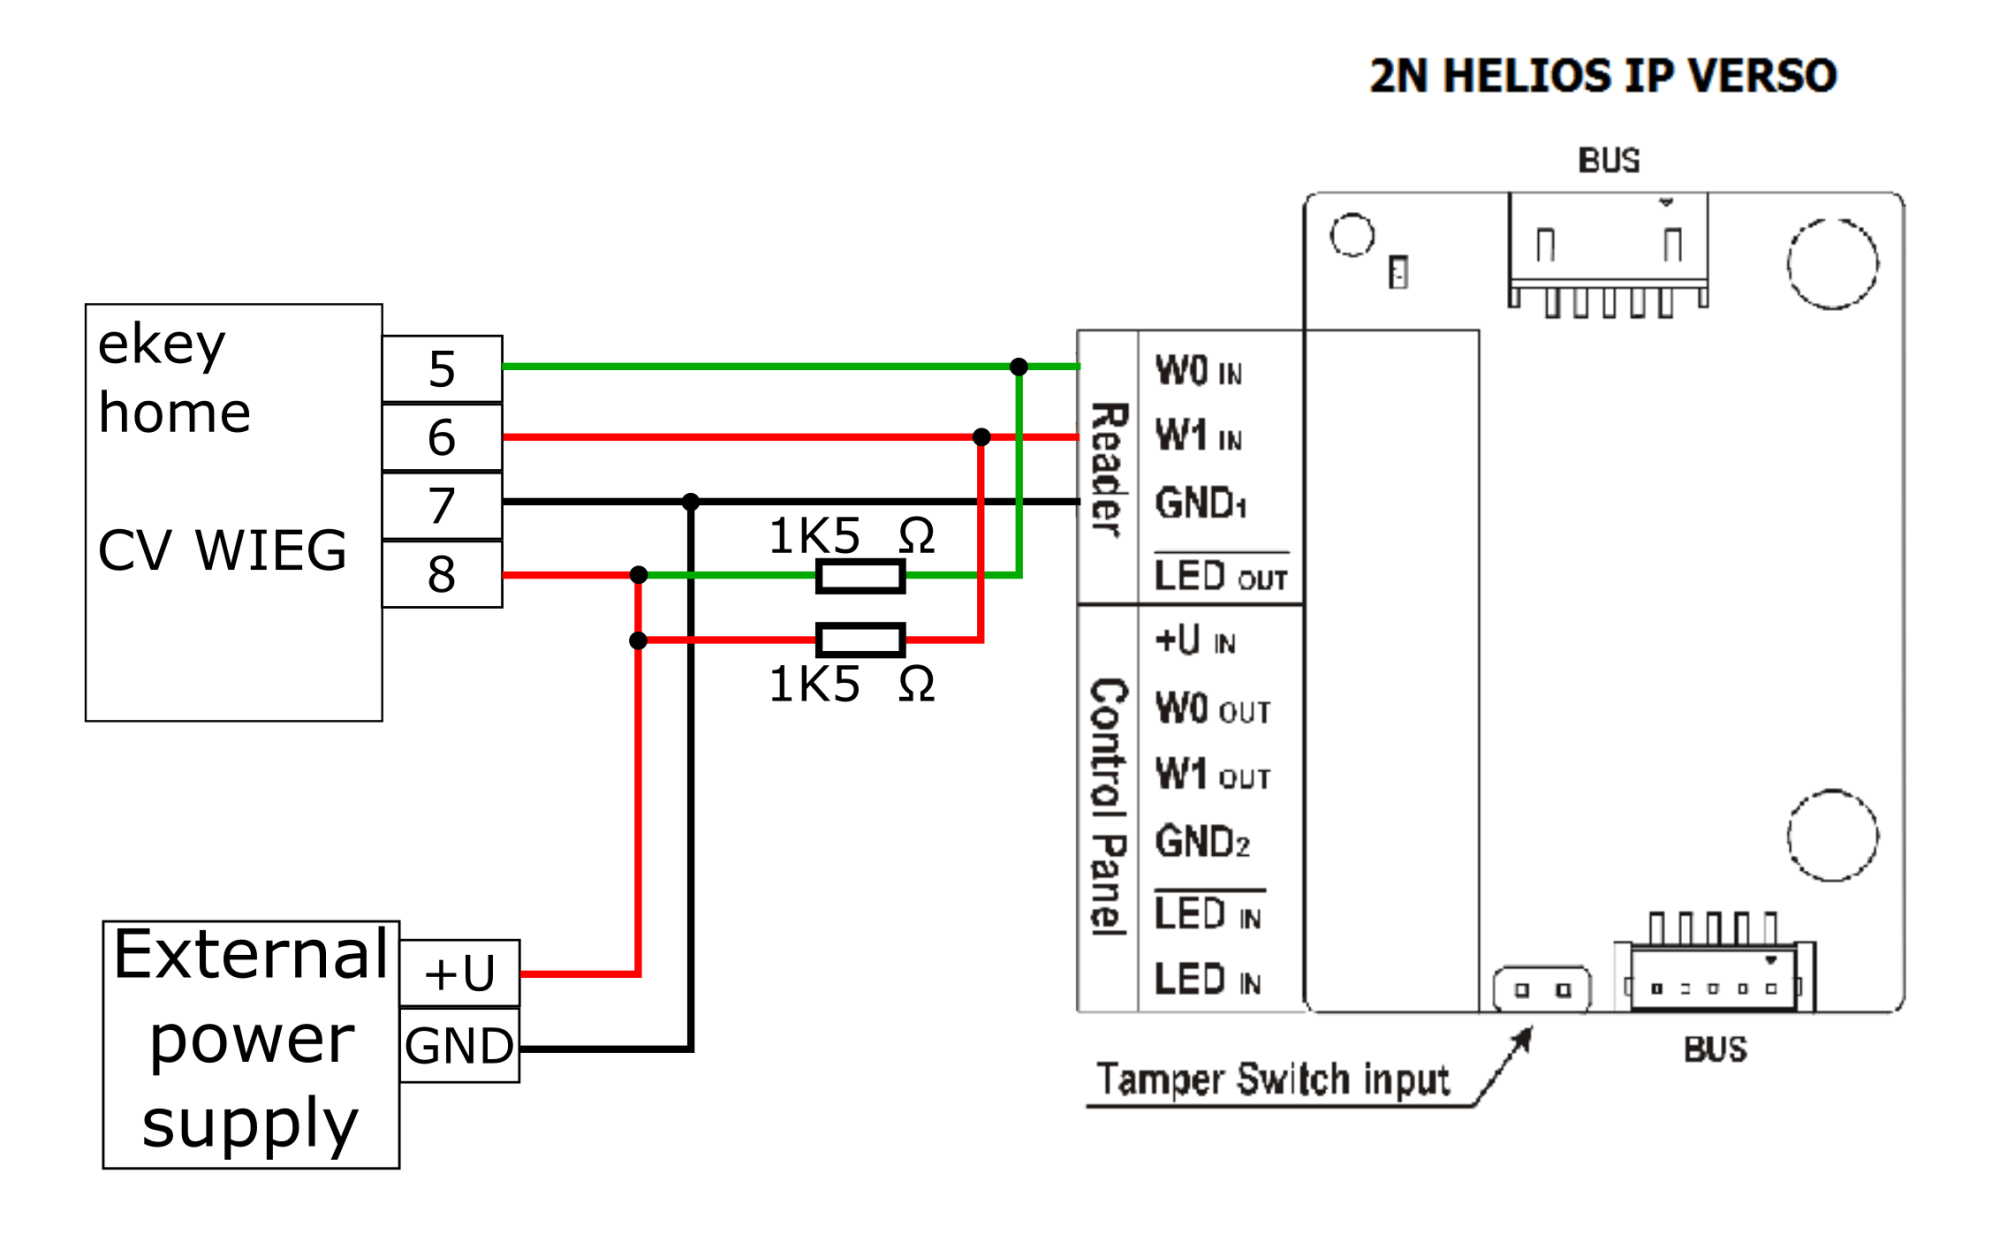 hight resolution of the connection to 2n helios ip verso is accoring to following schematic for correct functioning 1500 pull up resitor is needed to be connected according